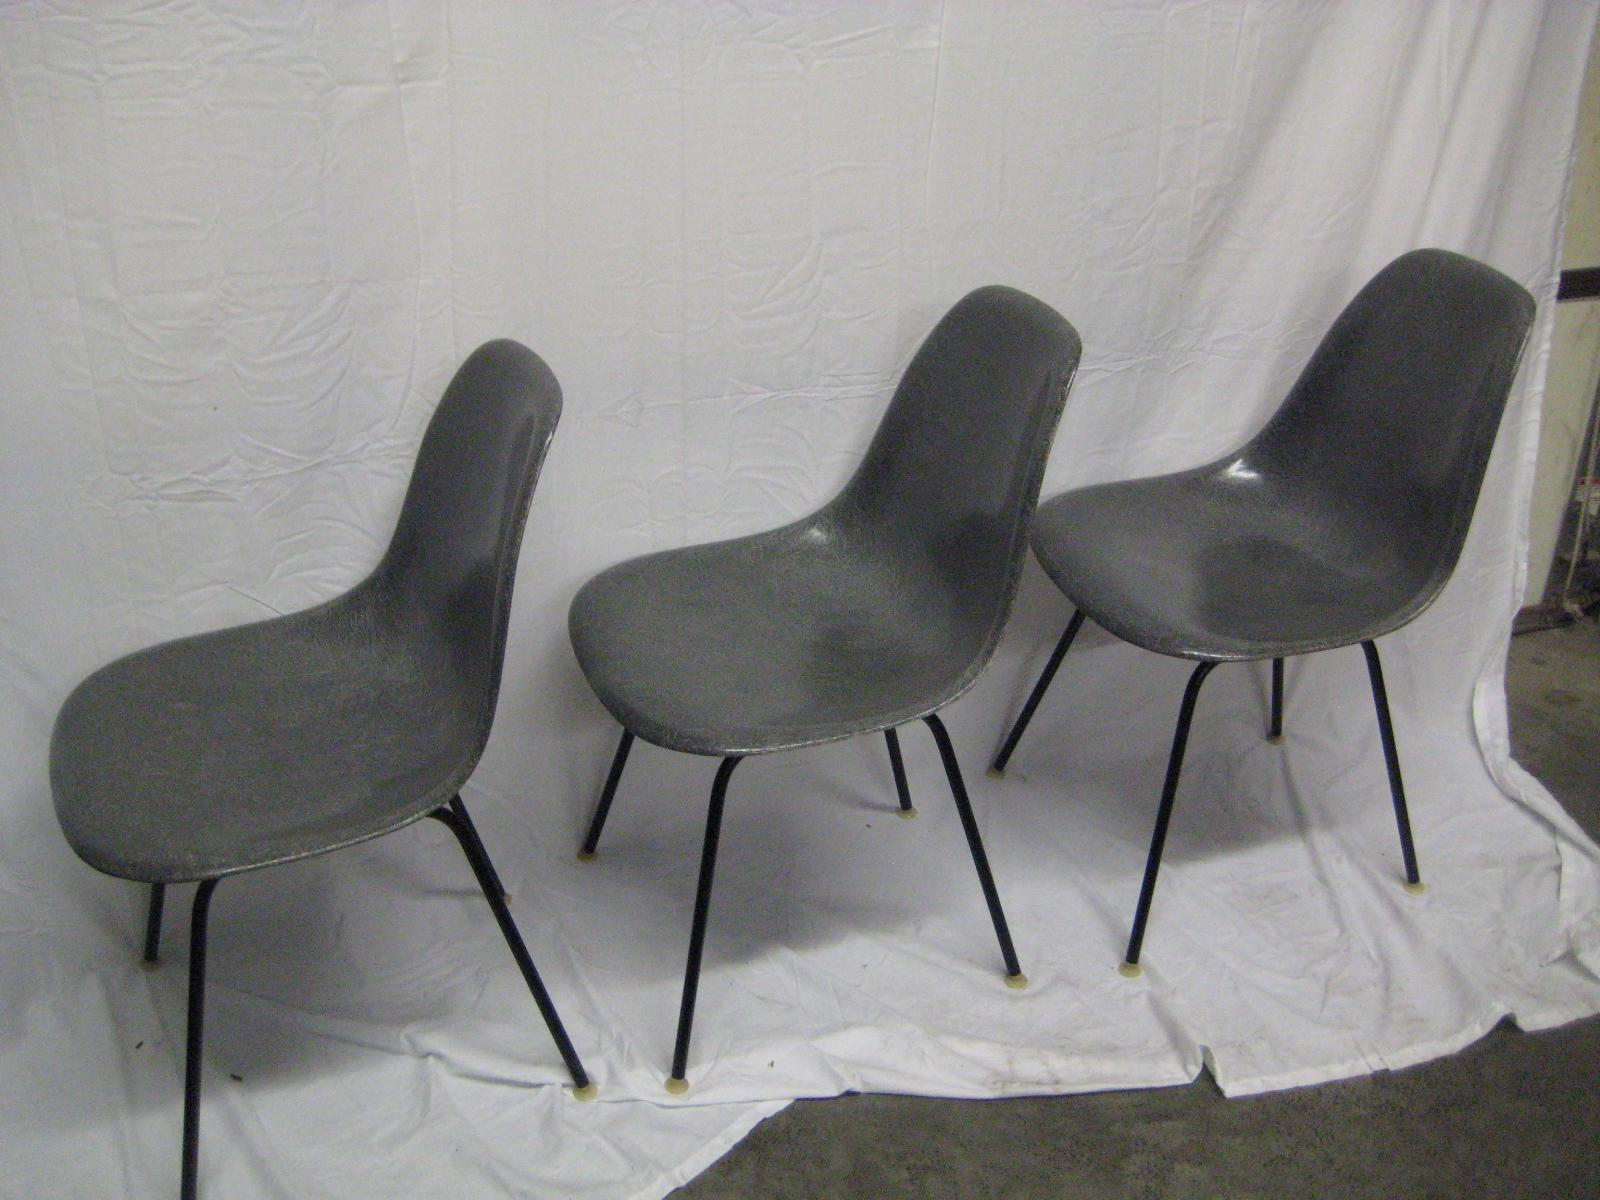 Midcentury Set Of Three Very Early Rare Charles Eames Chairs Dated November  14,1957.